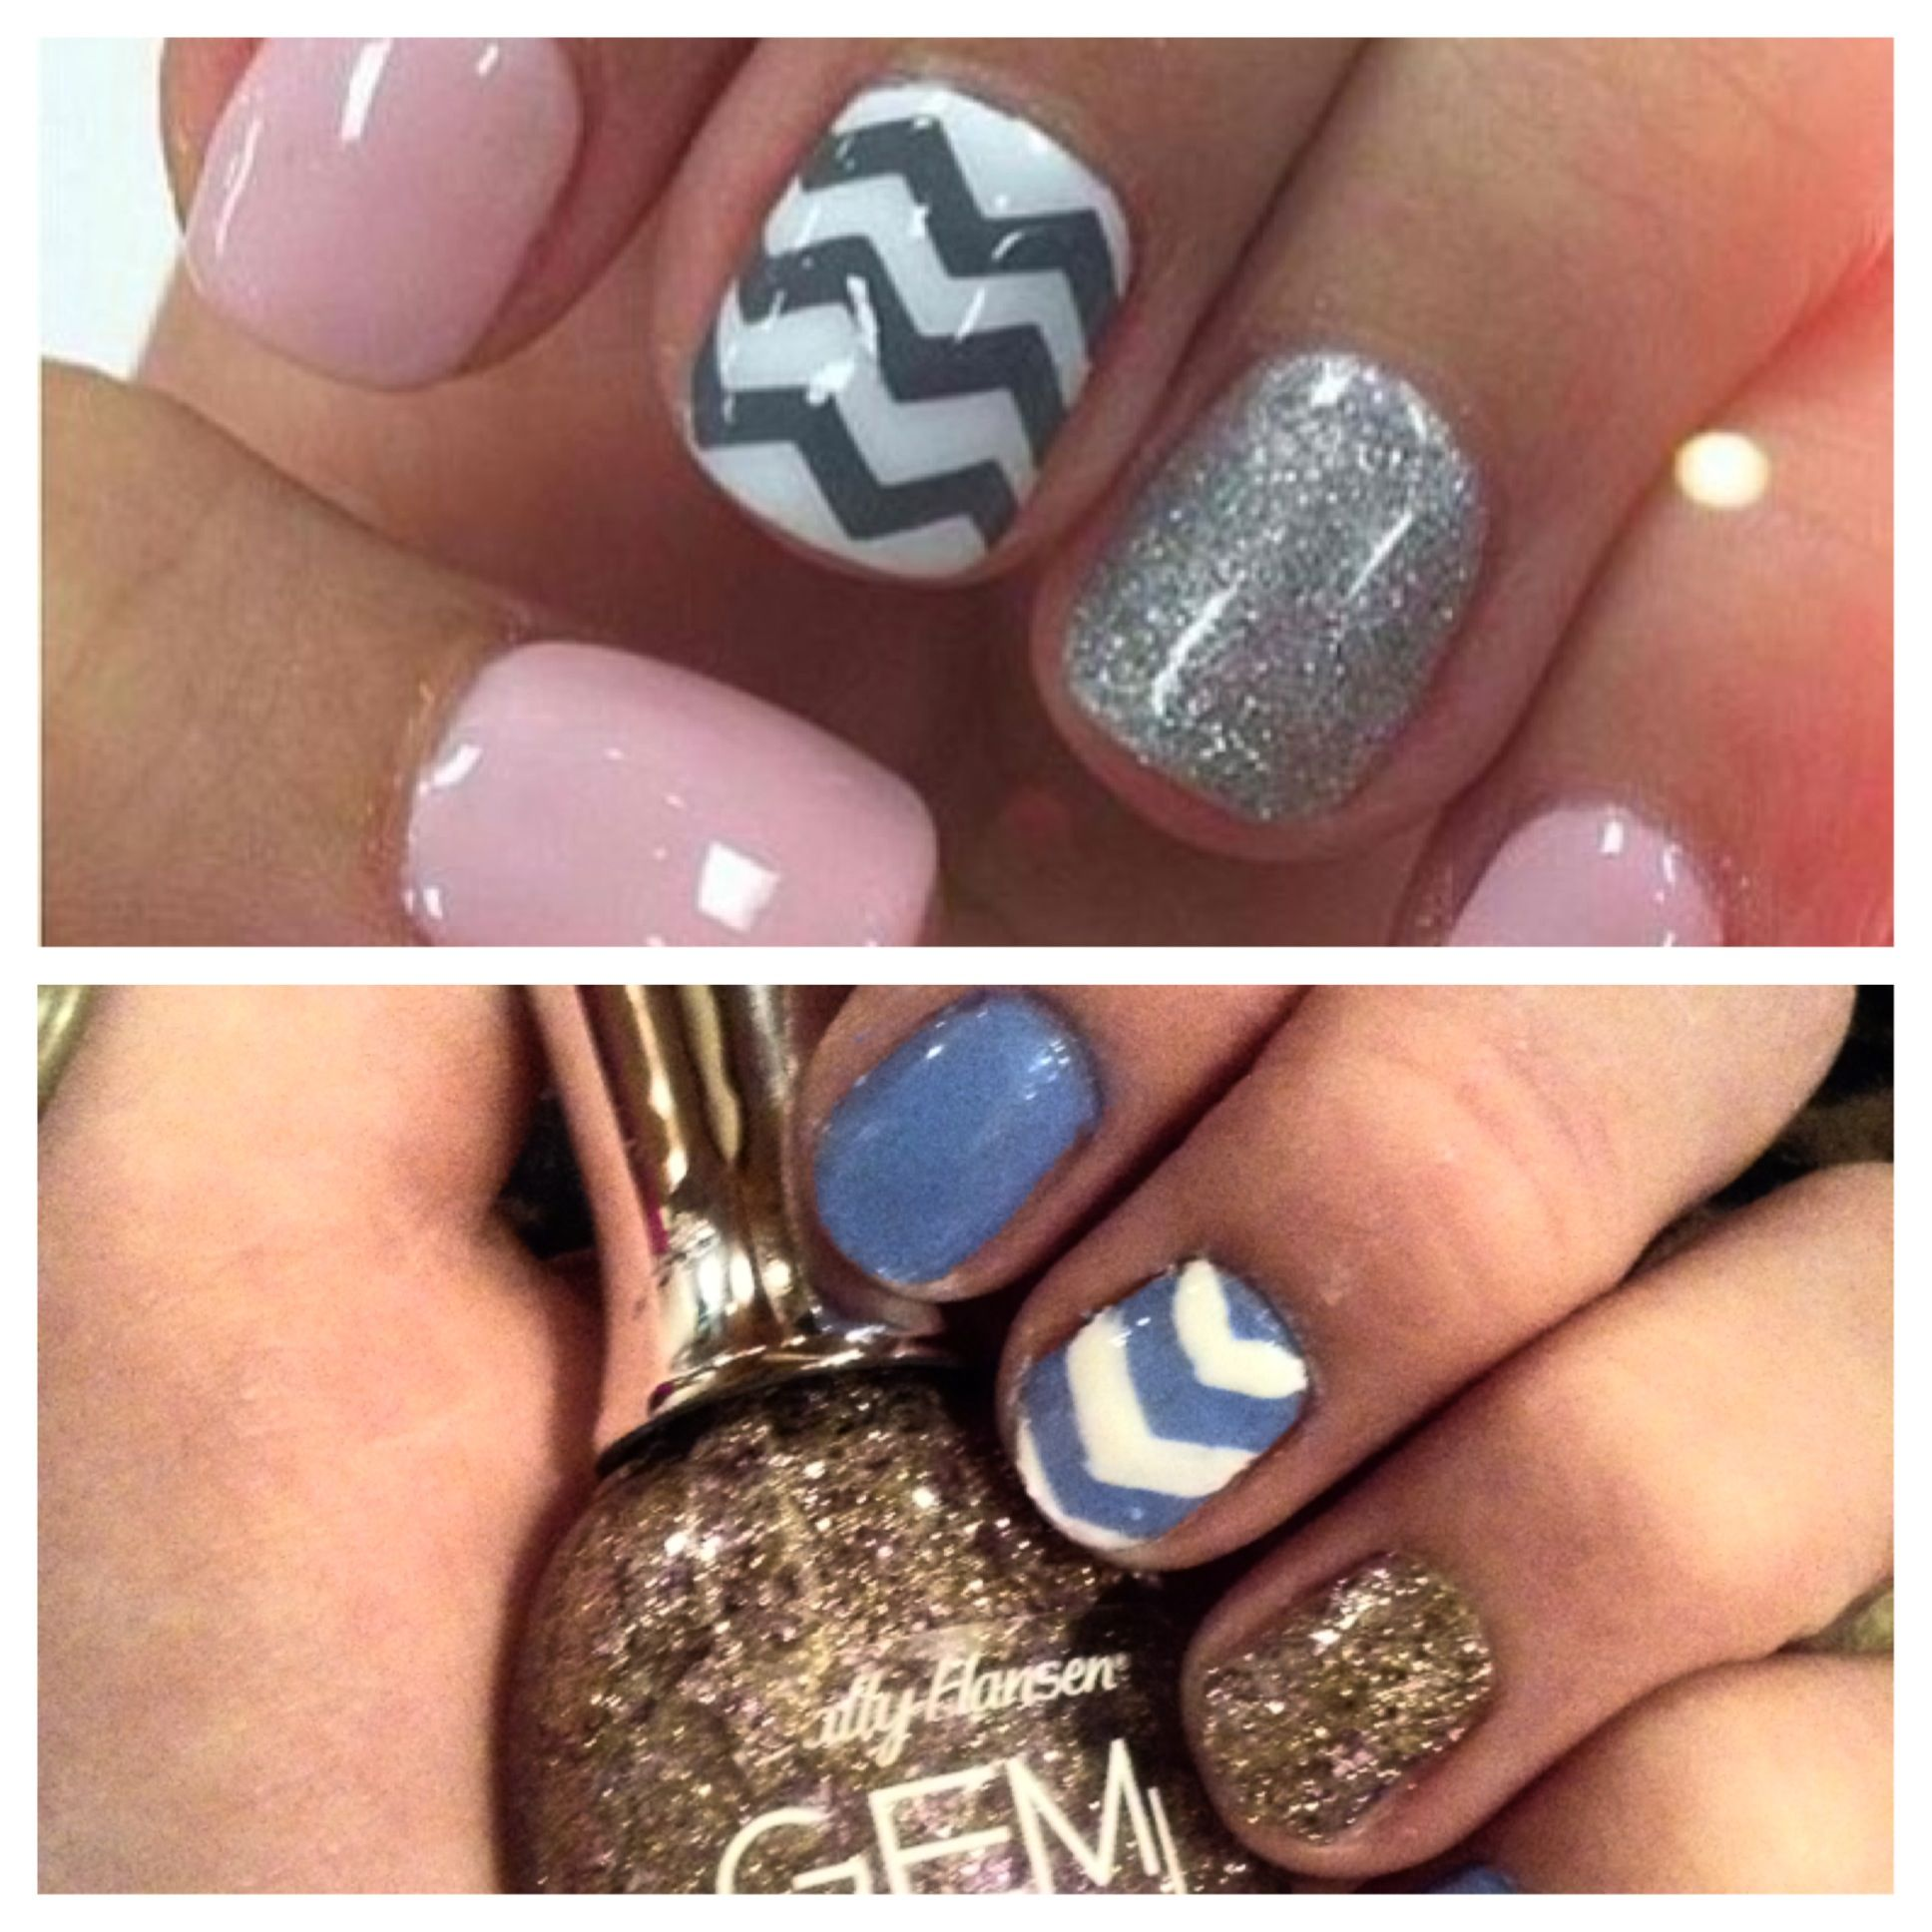 Pinterest's pink nails, vs. my nails. So proud of the outcome. :)